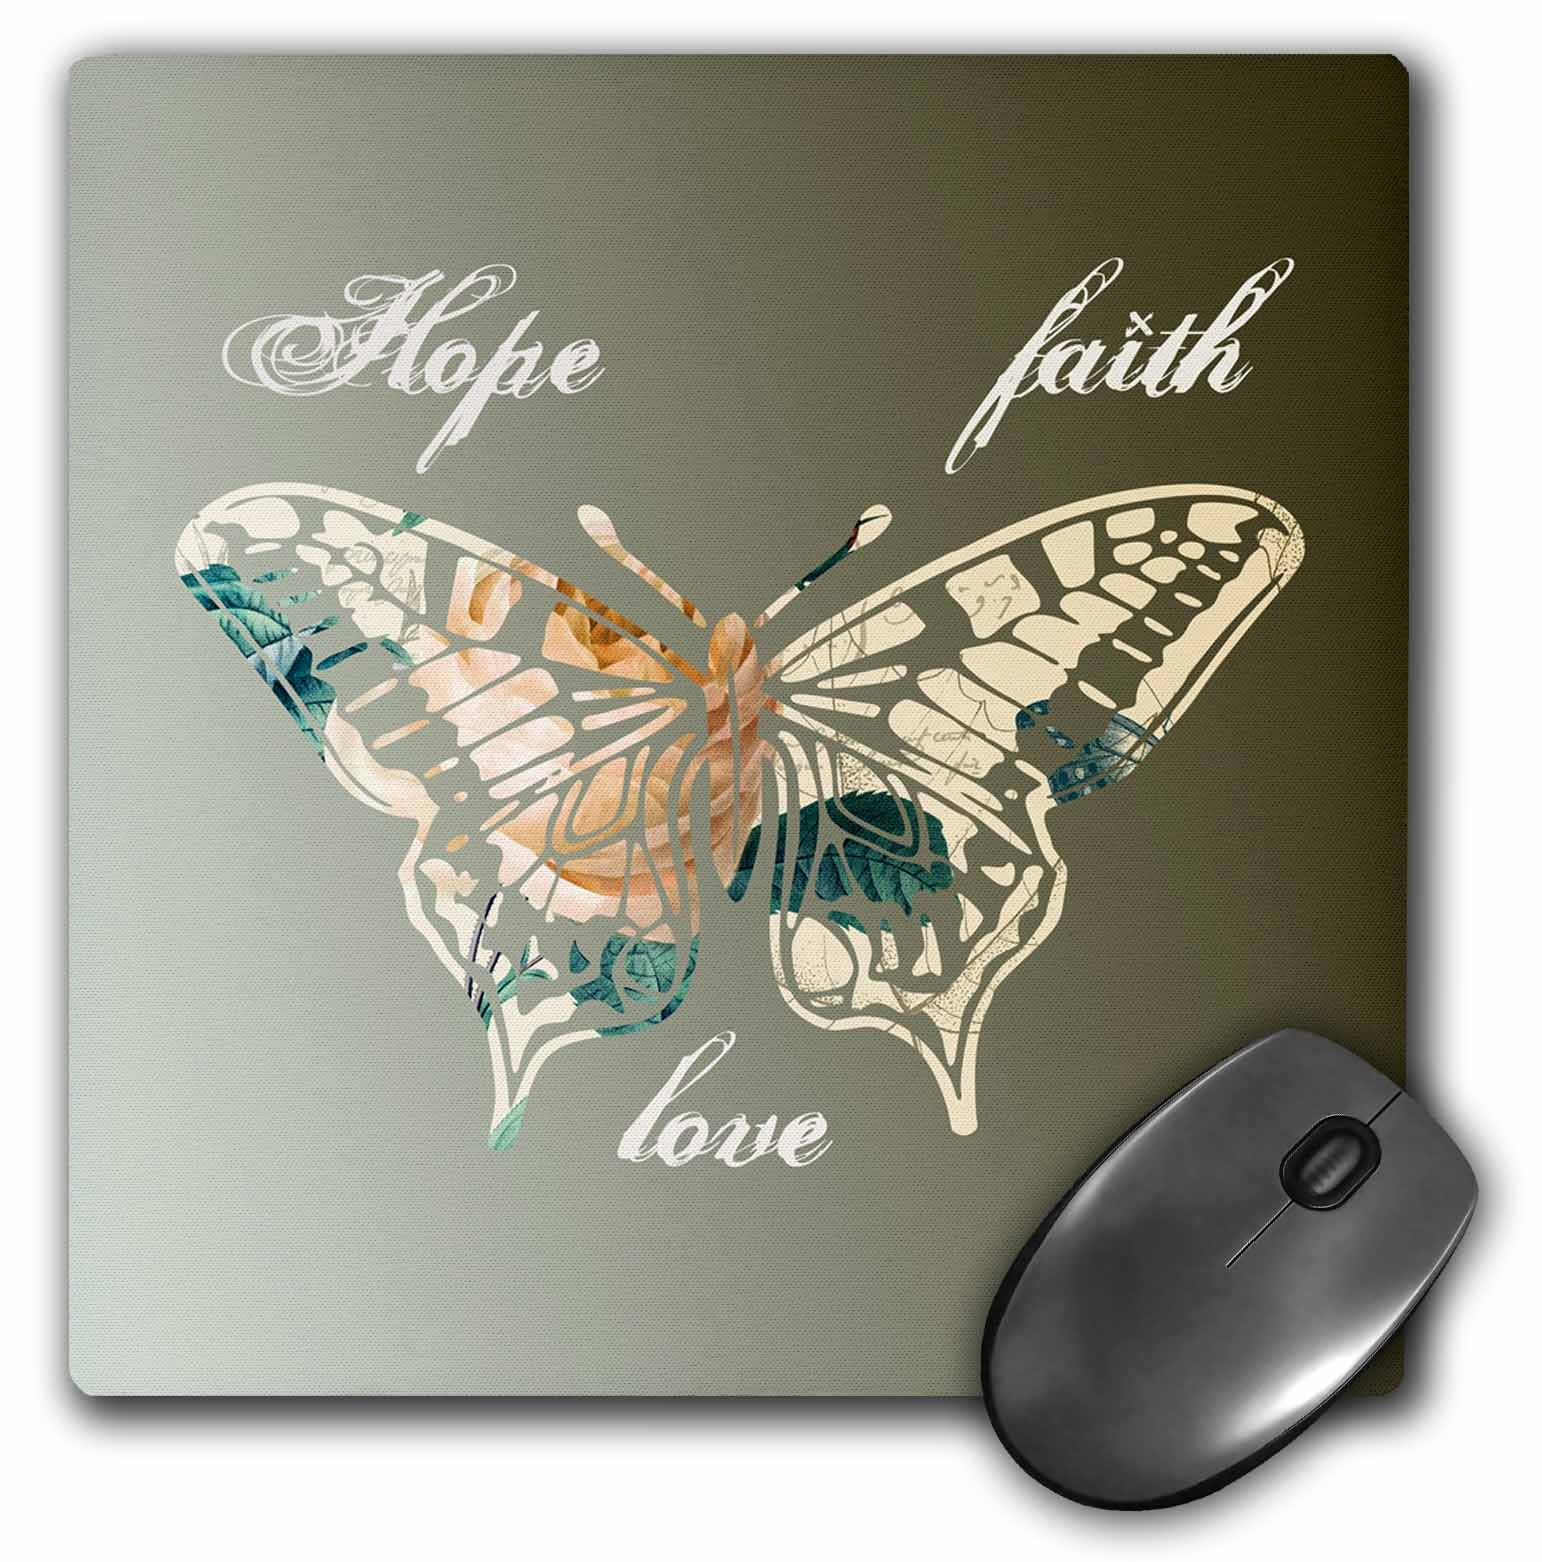 3dRose Hope, Faith and Love Gold Butterfly inspirational art, Mouse Pad, 8 by 8 inches by 3dRose